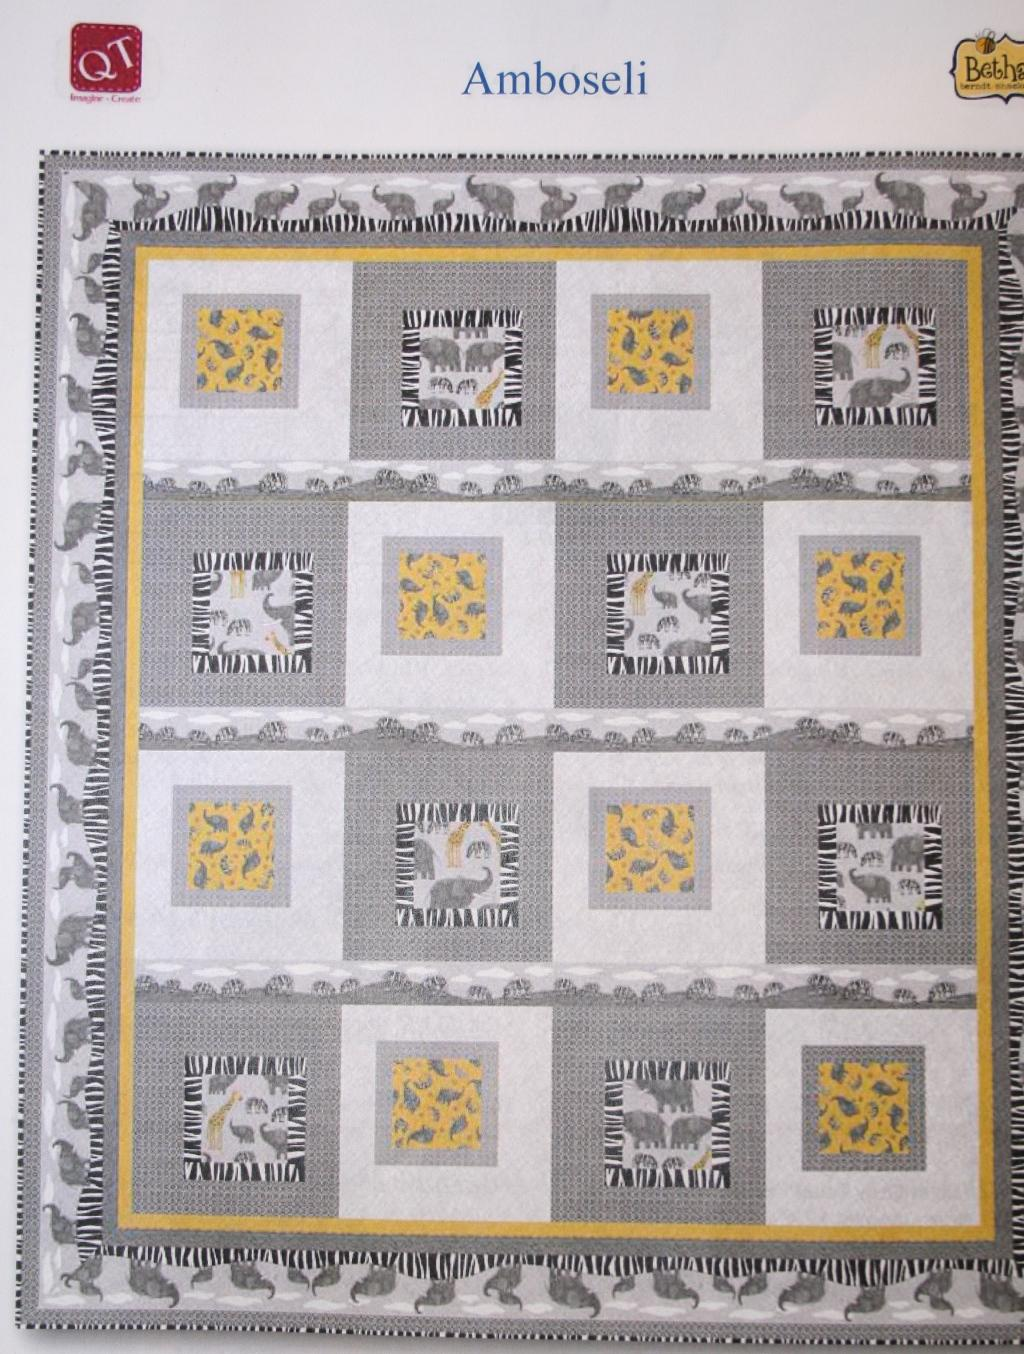 Elephants, zebras and giraffes in colors of black, gray, white and gold feature in this quilt.